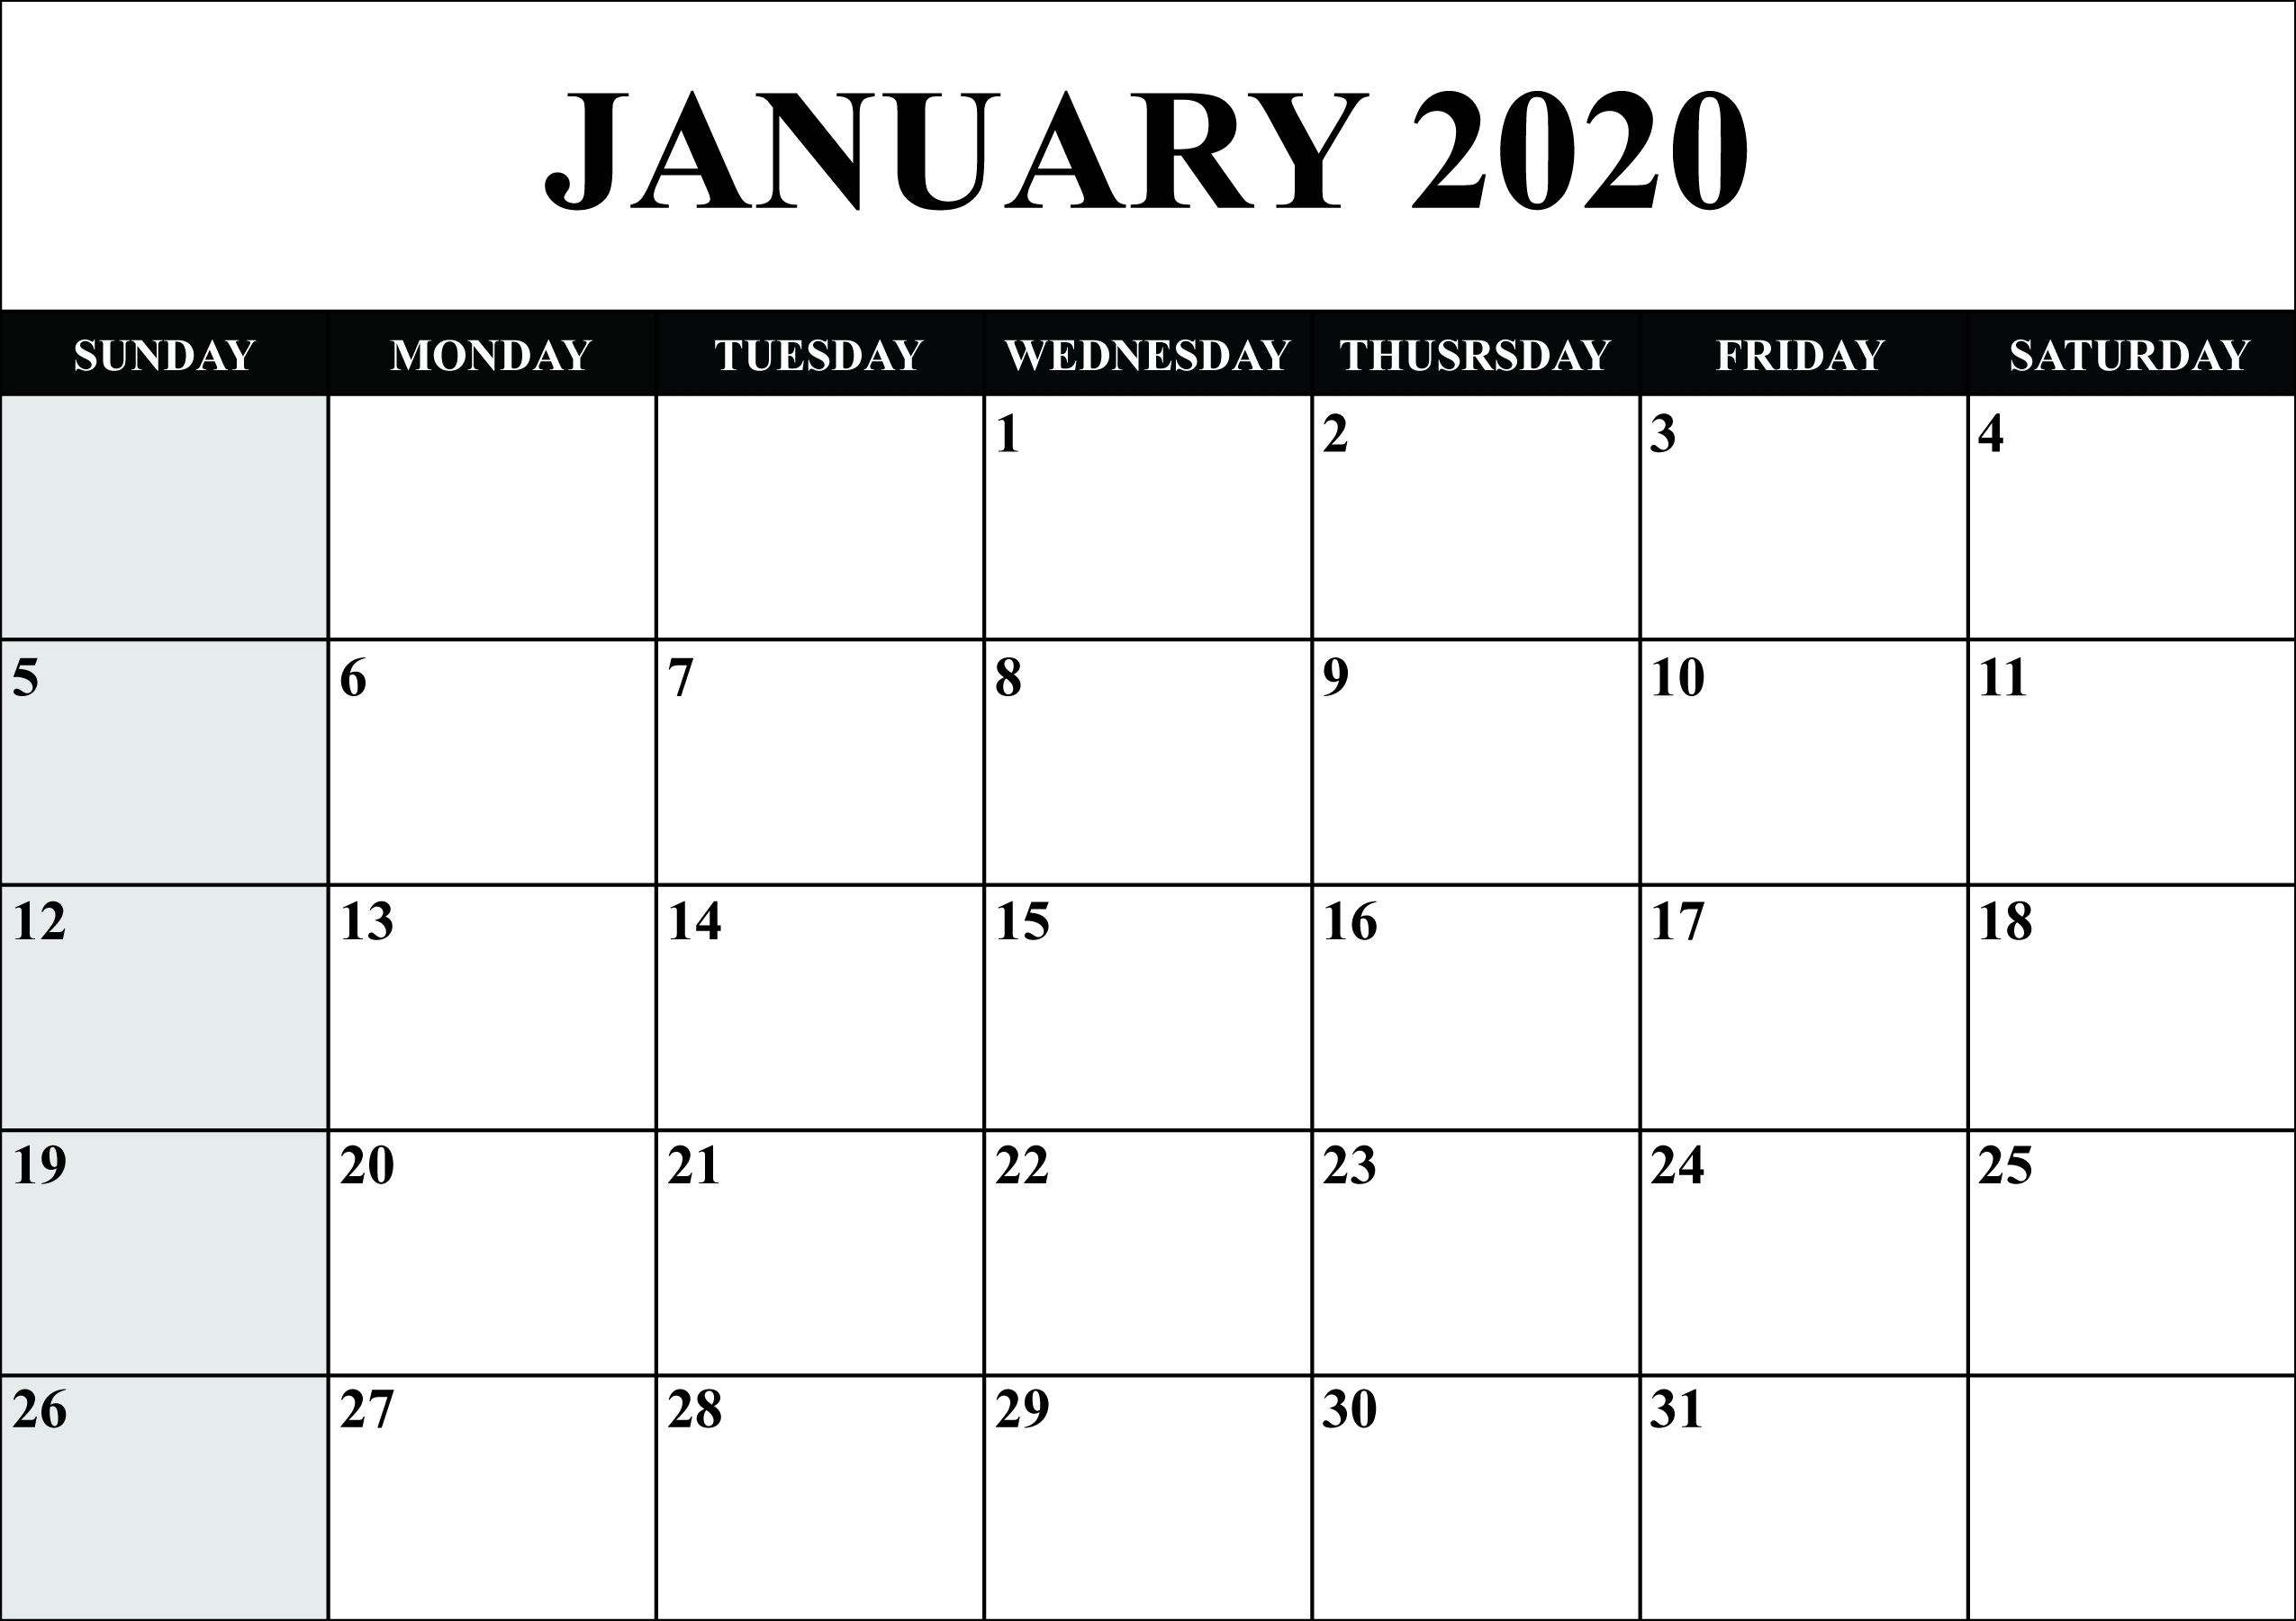 Free Blank January 2020 Calendar Printable In Pdf, Word  Blank Calendar Fill In 2020 Printable